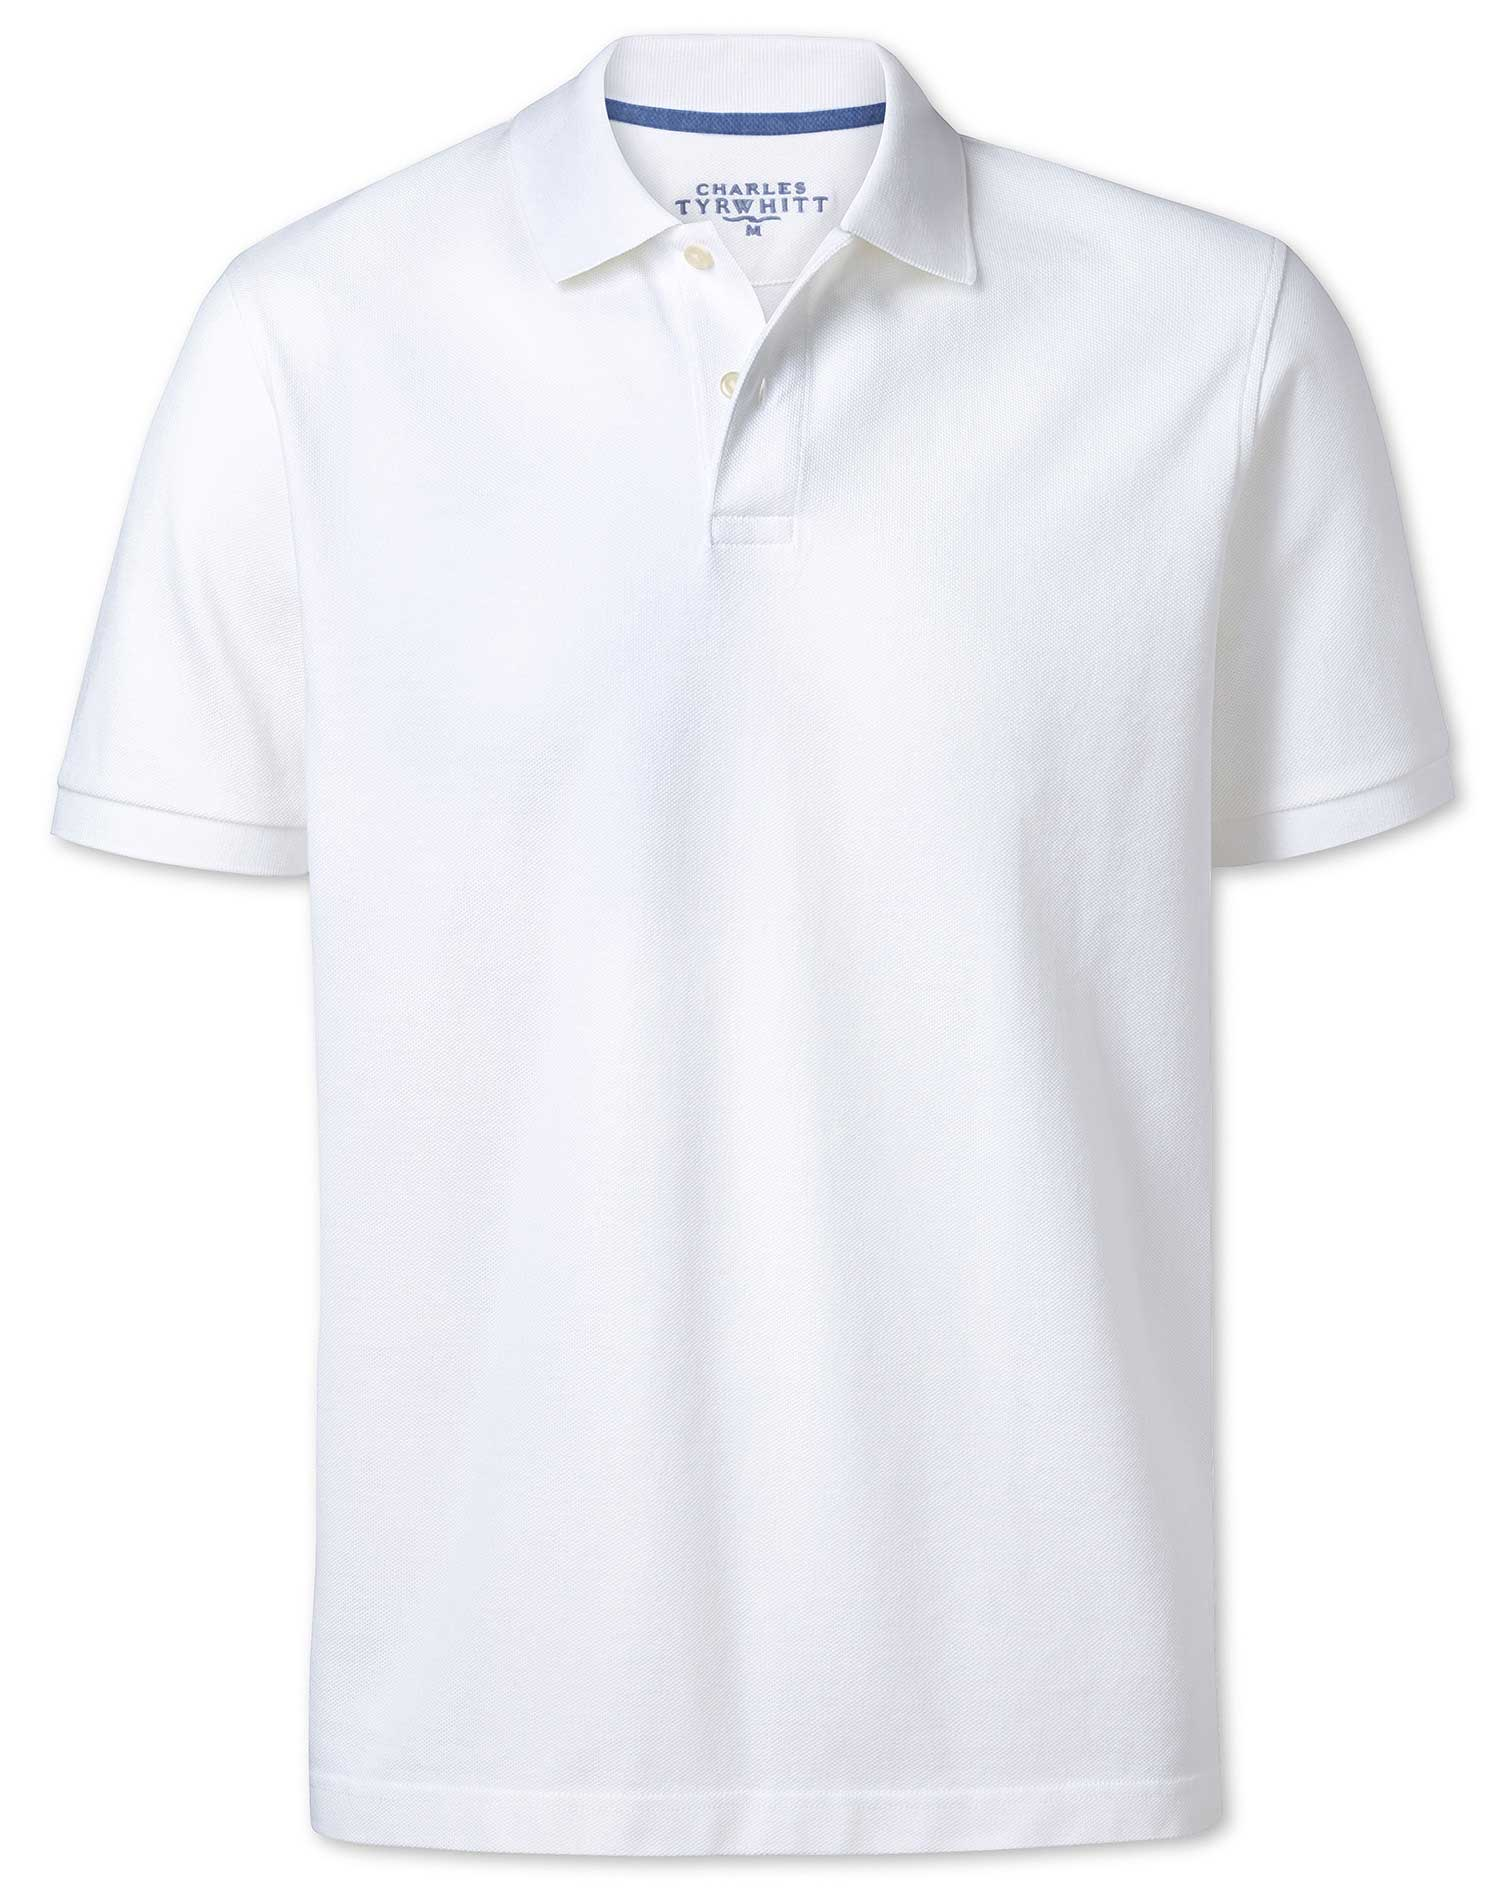 White Pique Cotton Polo Size XS by Charles Tyrwhitt